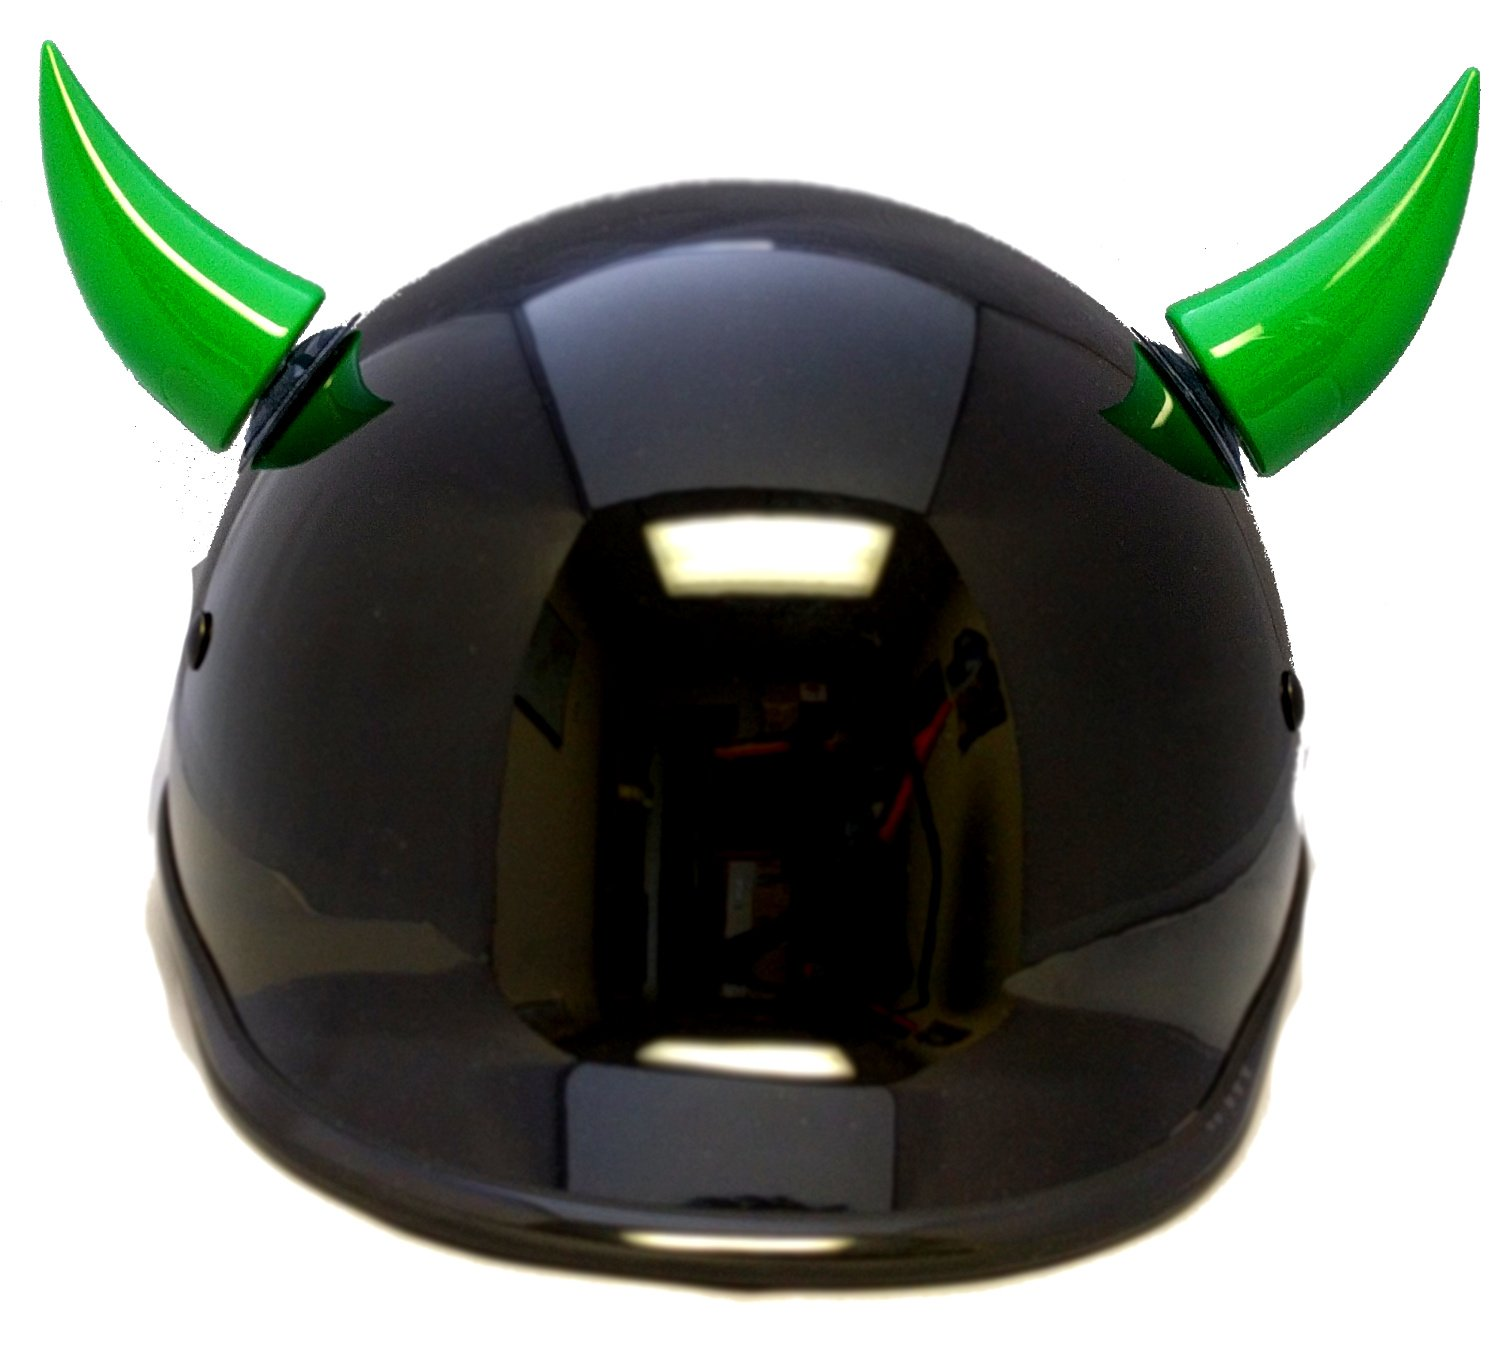 Stick on Suction Cup Car Motorcycle Ski Bike Helmet Spike Horns (2 horns included) (Green)